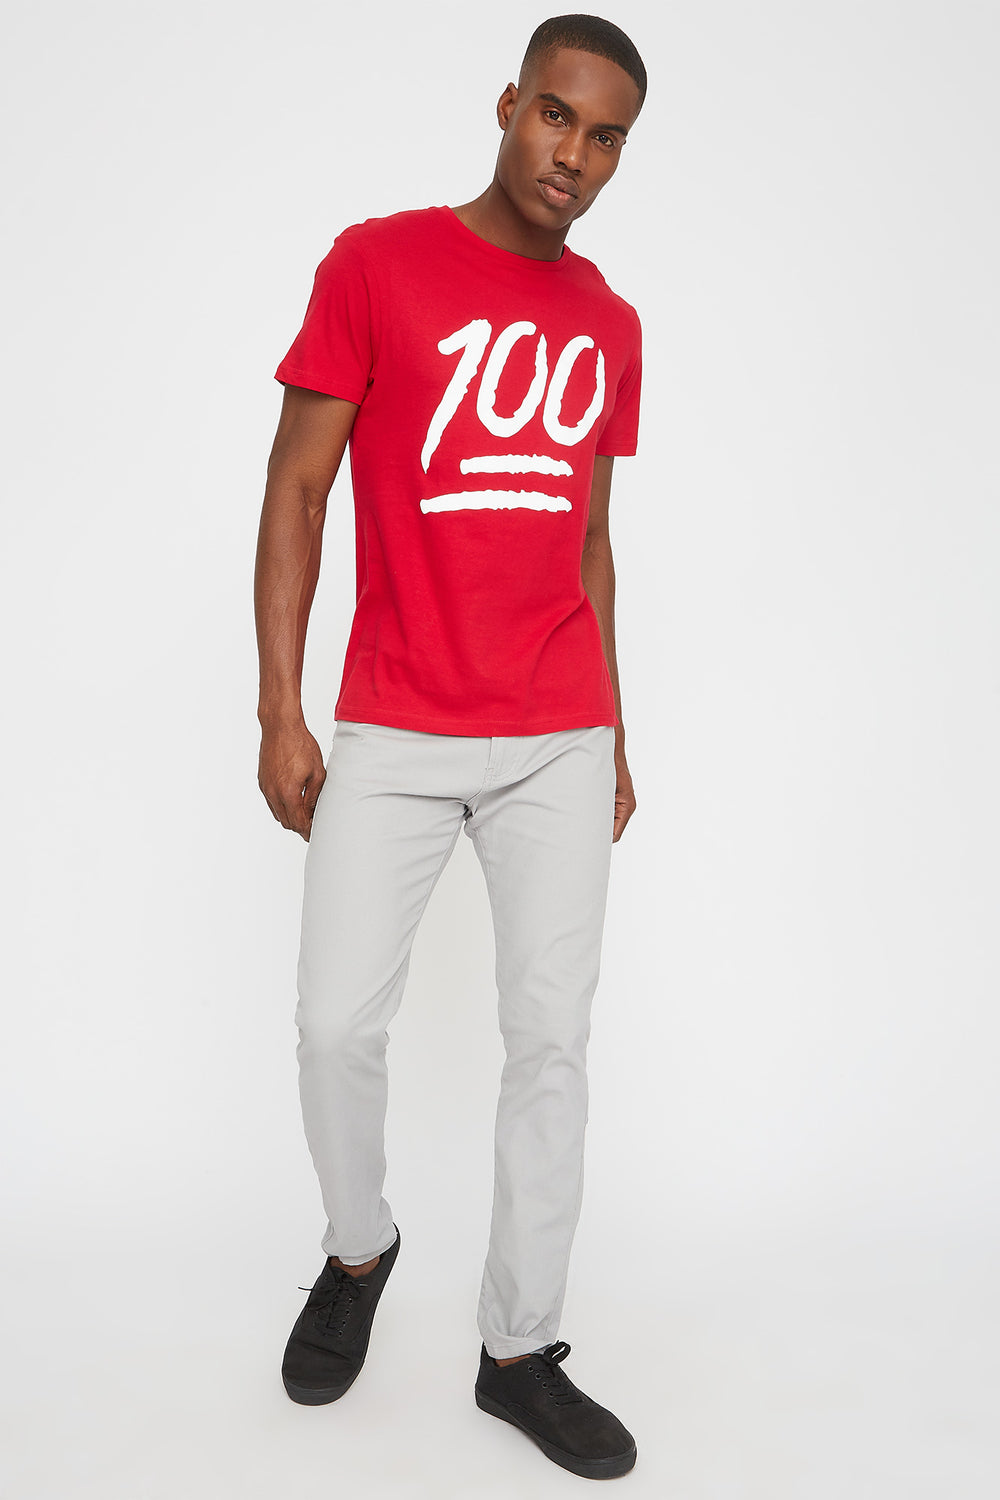 One Hundred Emoji Graphic T-Shirt Red